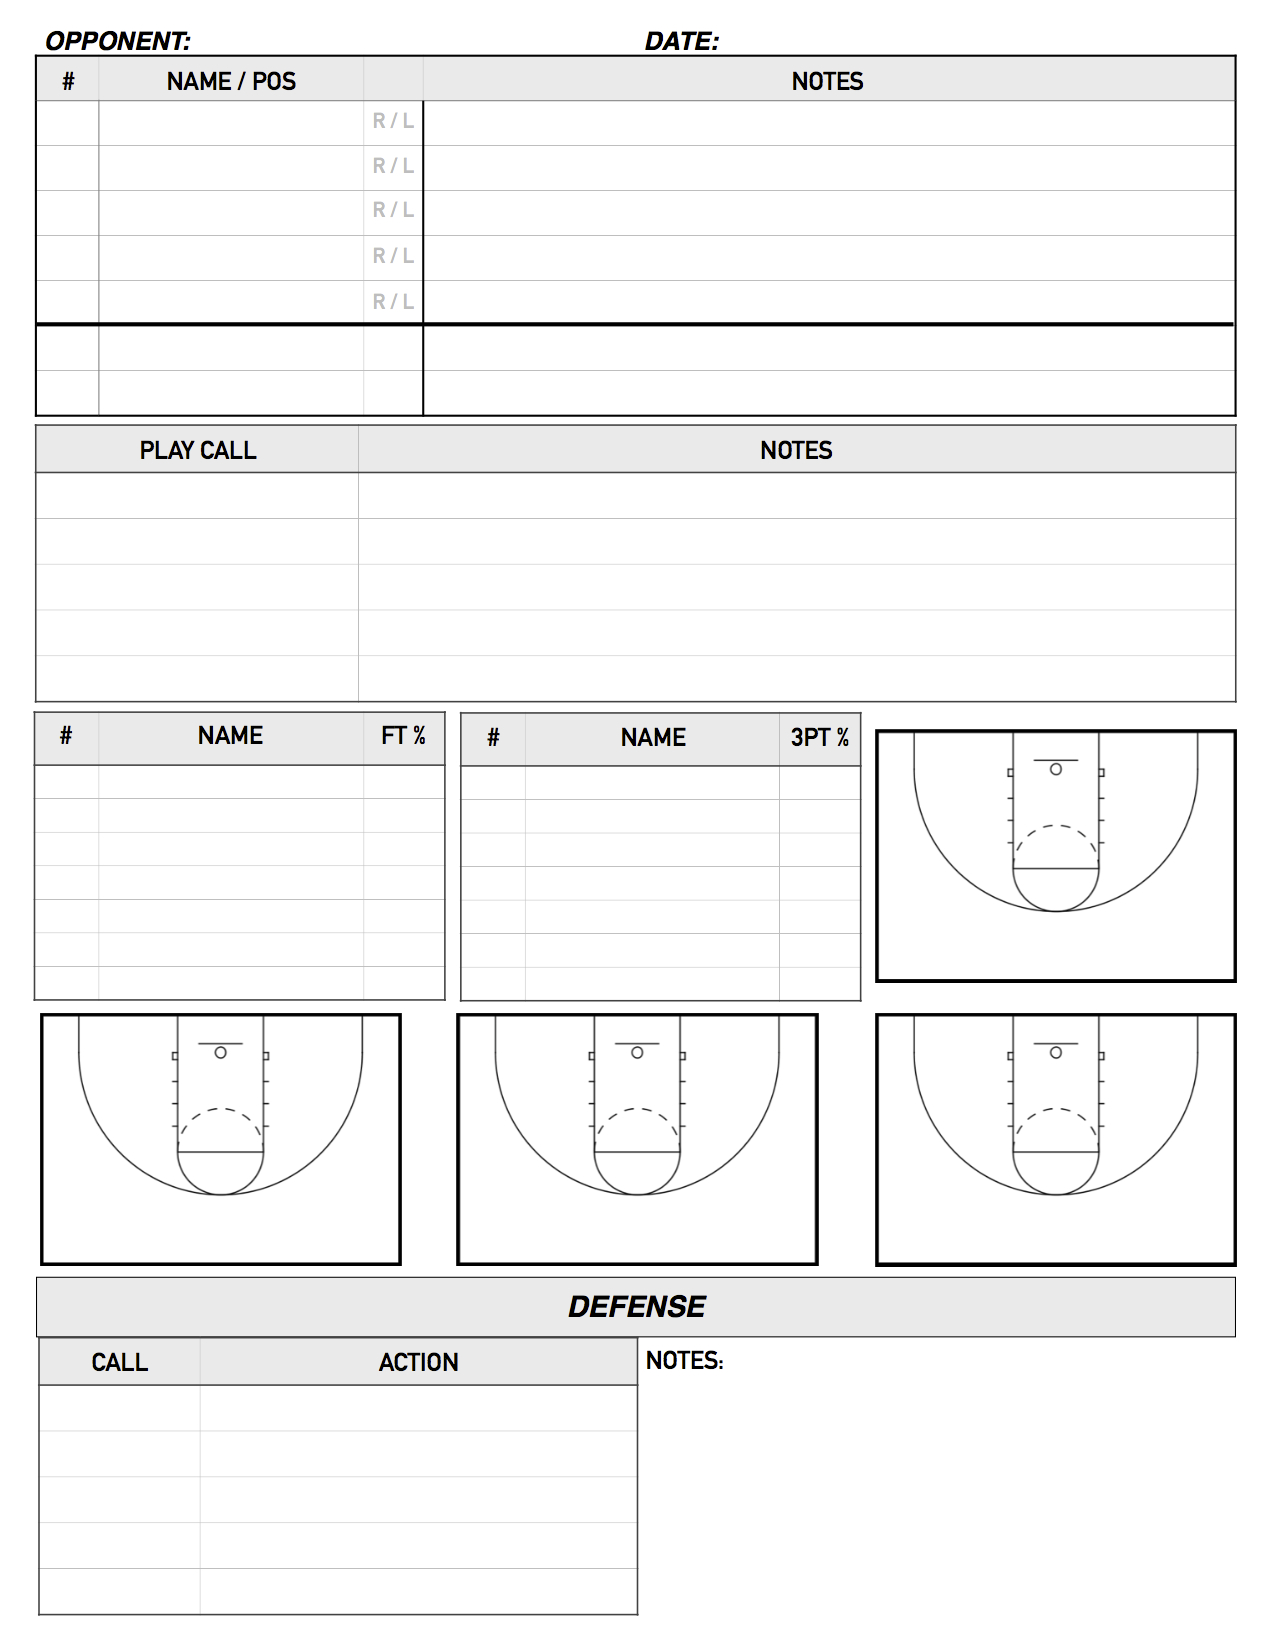 Scouting From The Bench | College Basketball, Basketball Throughout Scouting Report Template Basketball